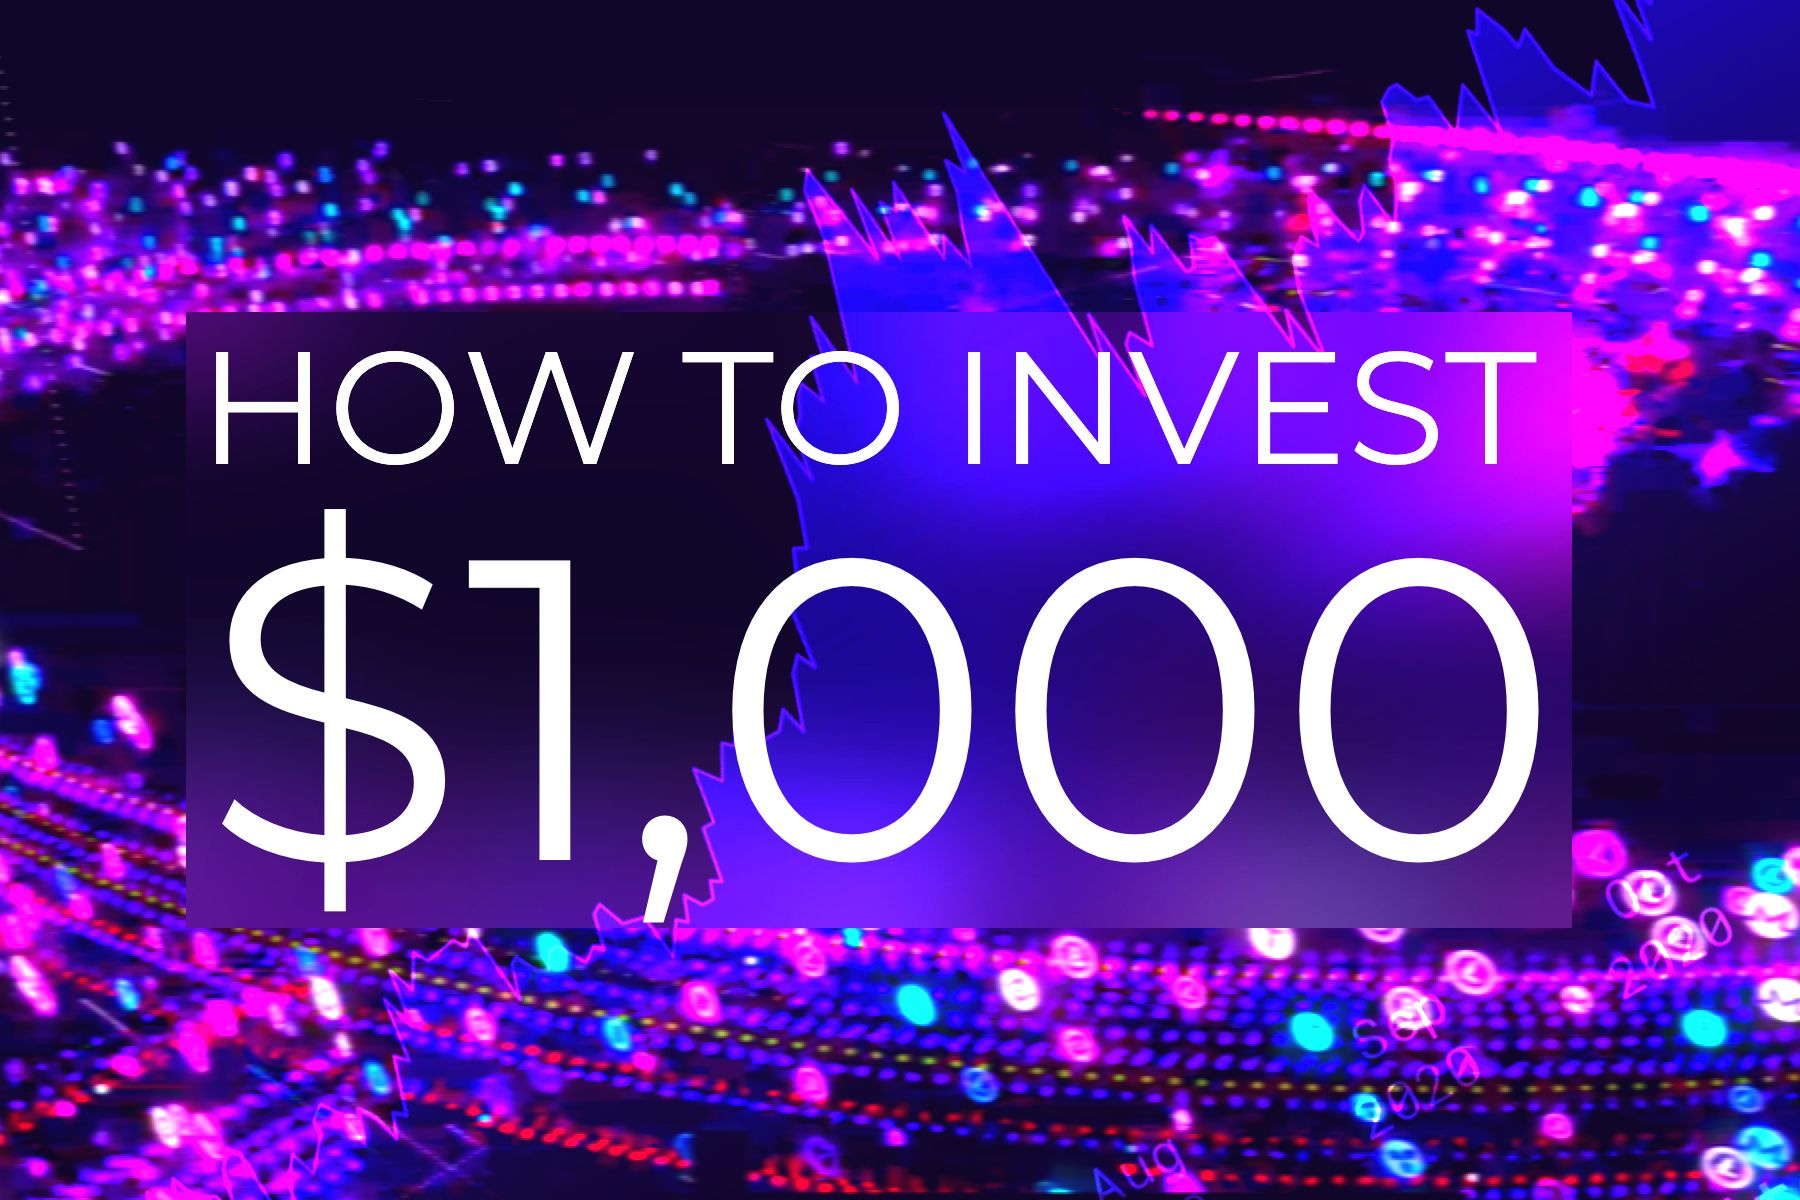 How to make money by investing in cryptocurrency   by Bitspark   The Ledger    Medium